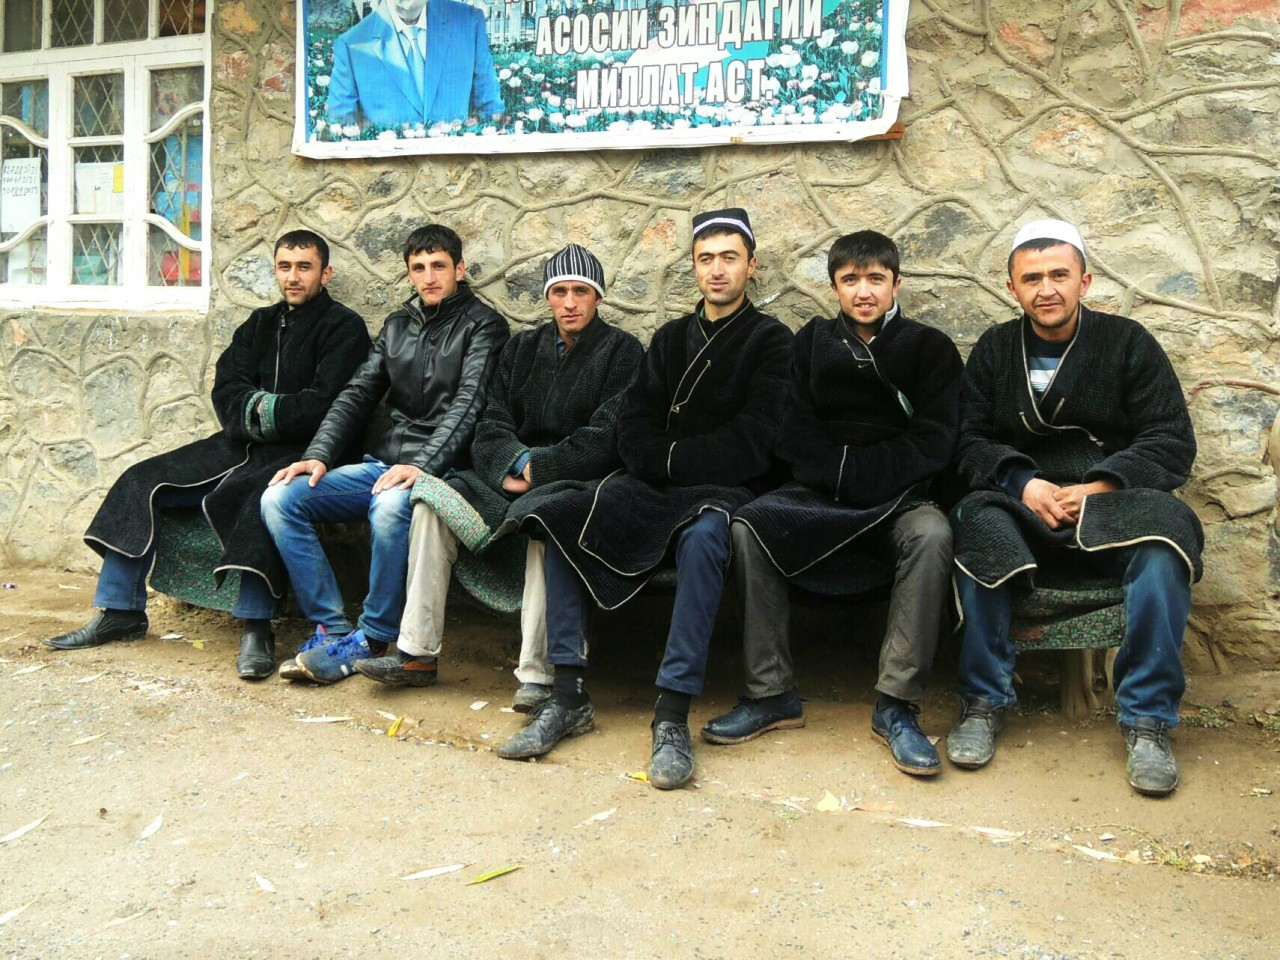 Some guys in Tajikistan